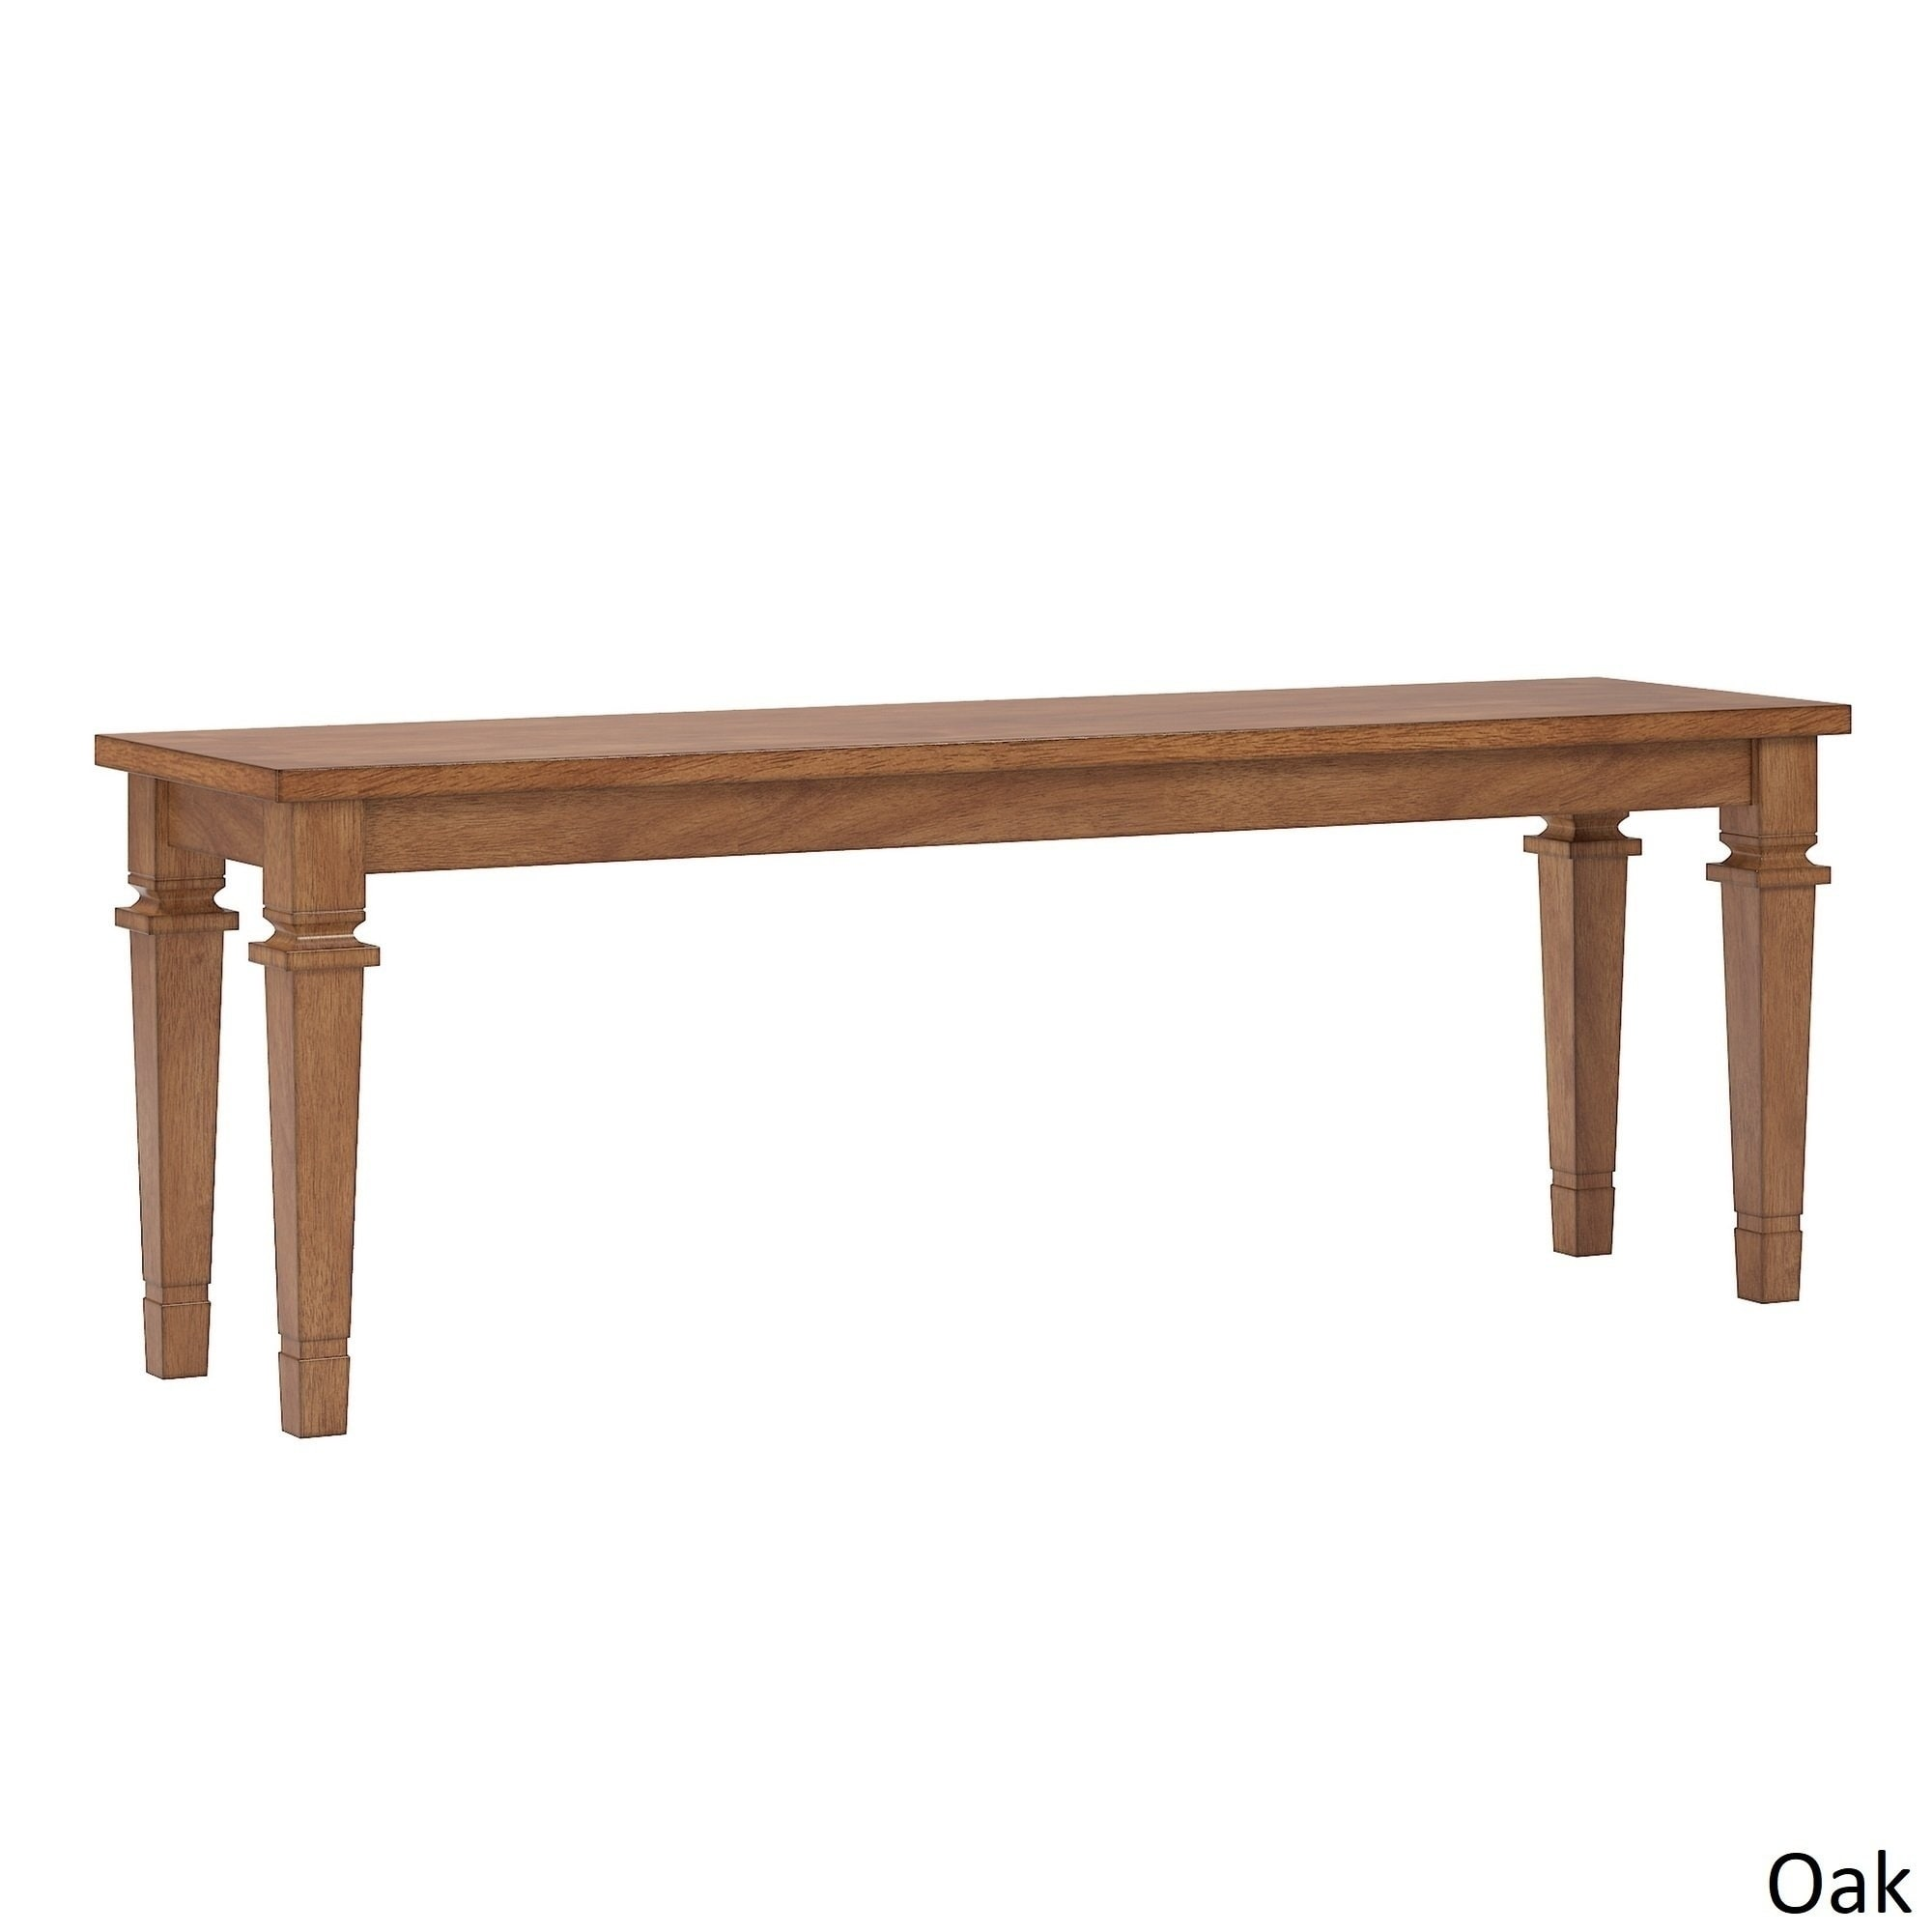 Super Elena Ii Solid Wood Dining Bench By Inspire Q Classic 55 X 84 Gmtry Best Dining Table And Chair Ideas Images Gmtryco